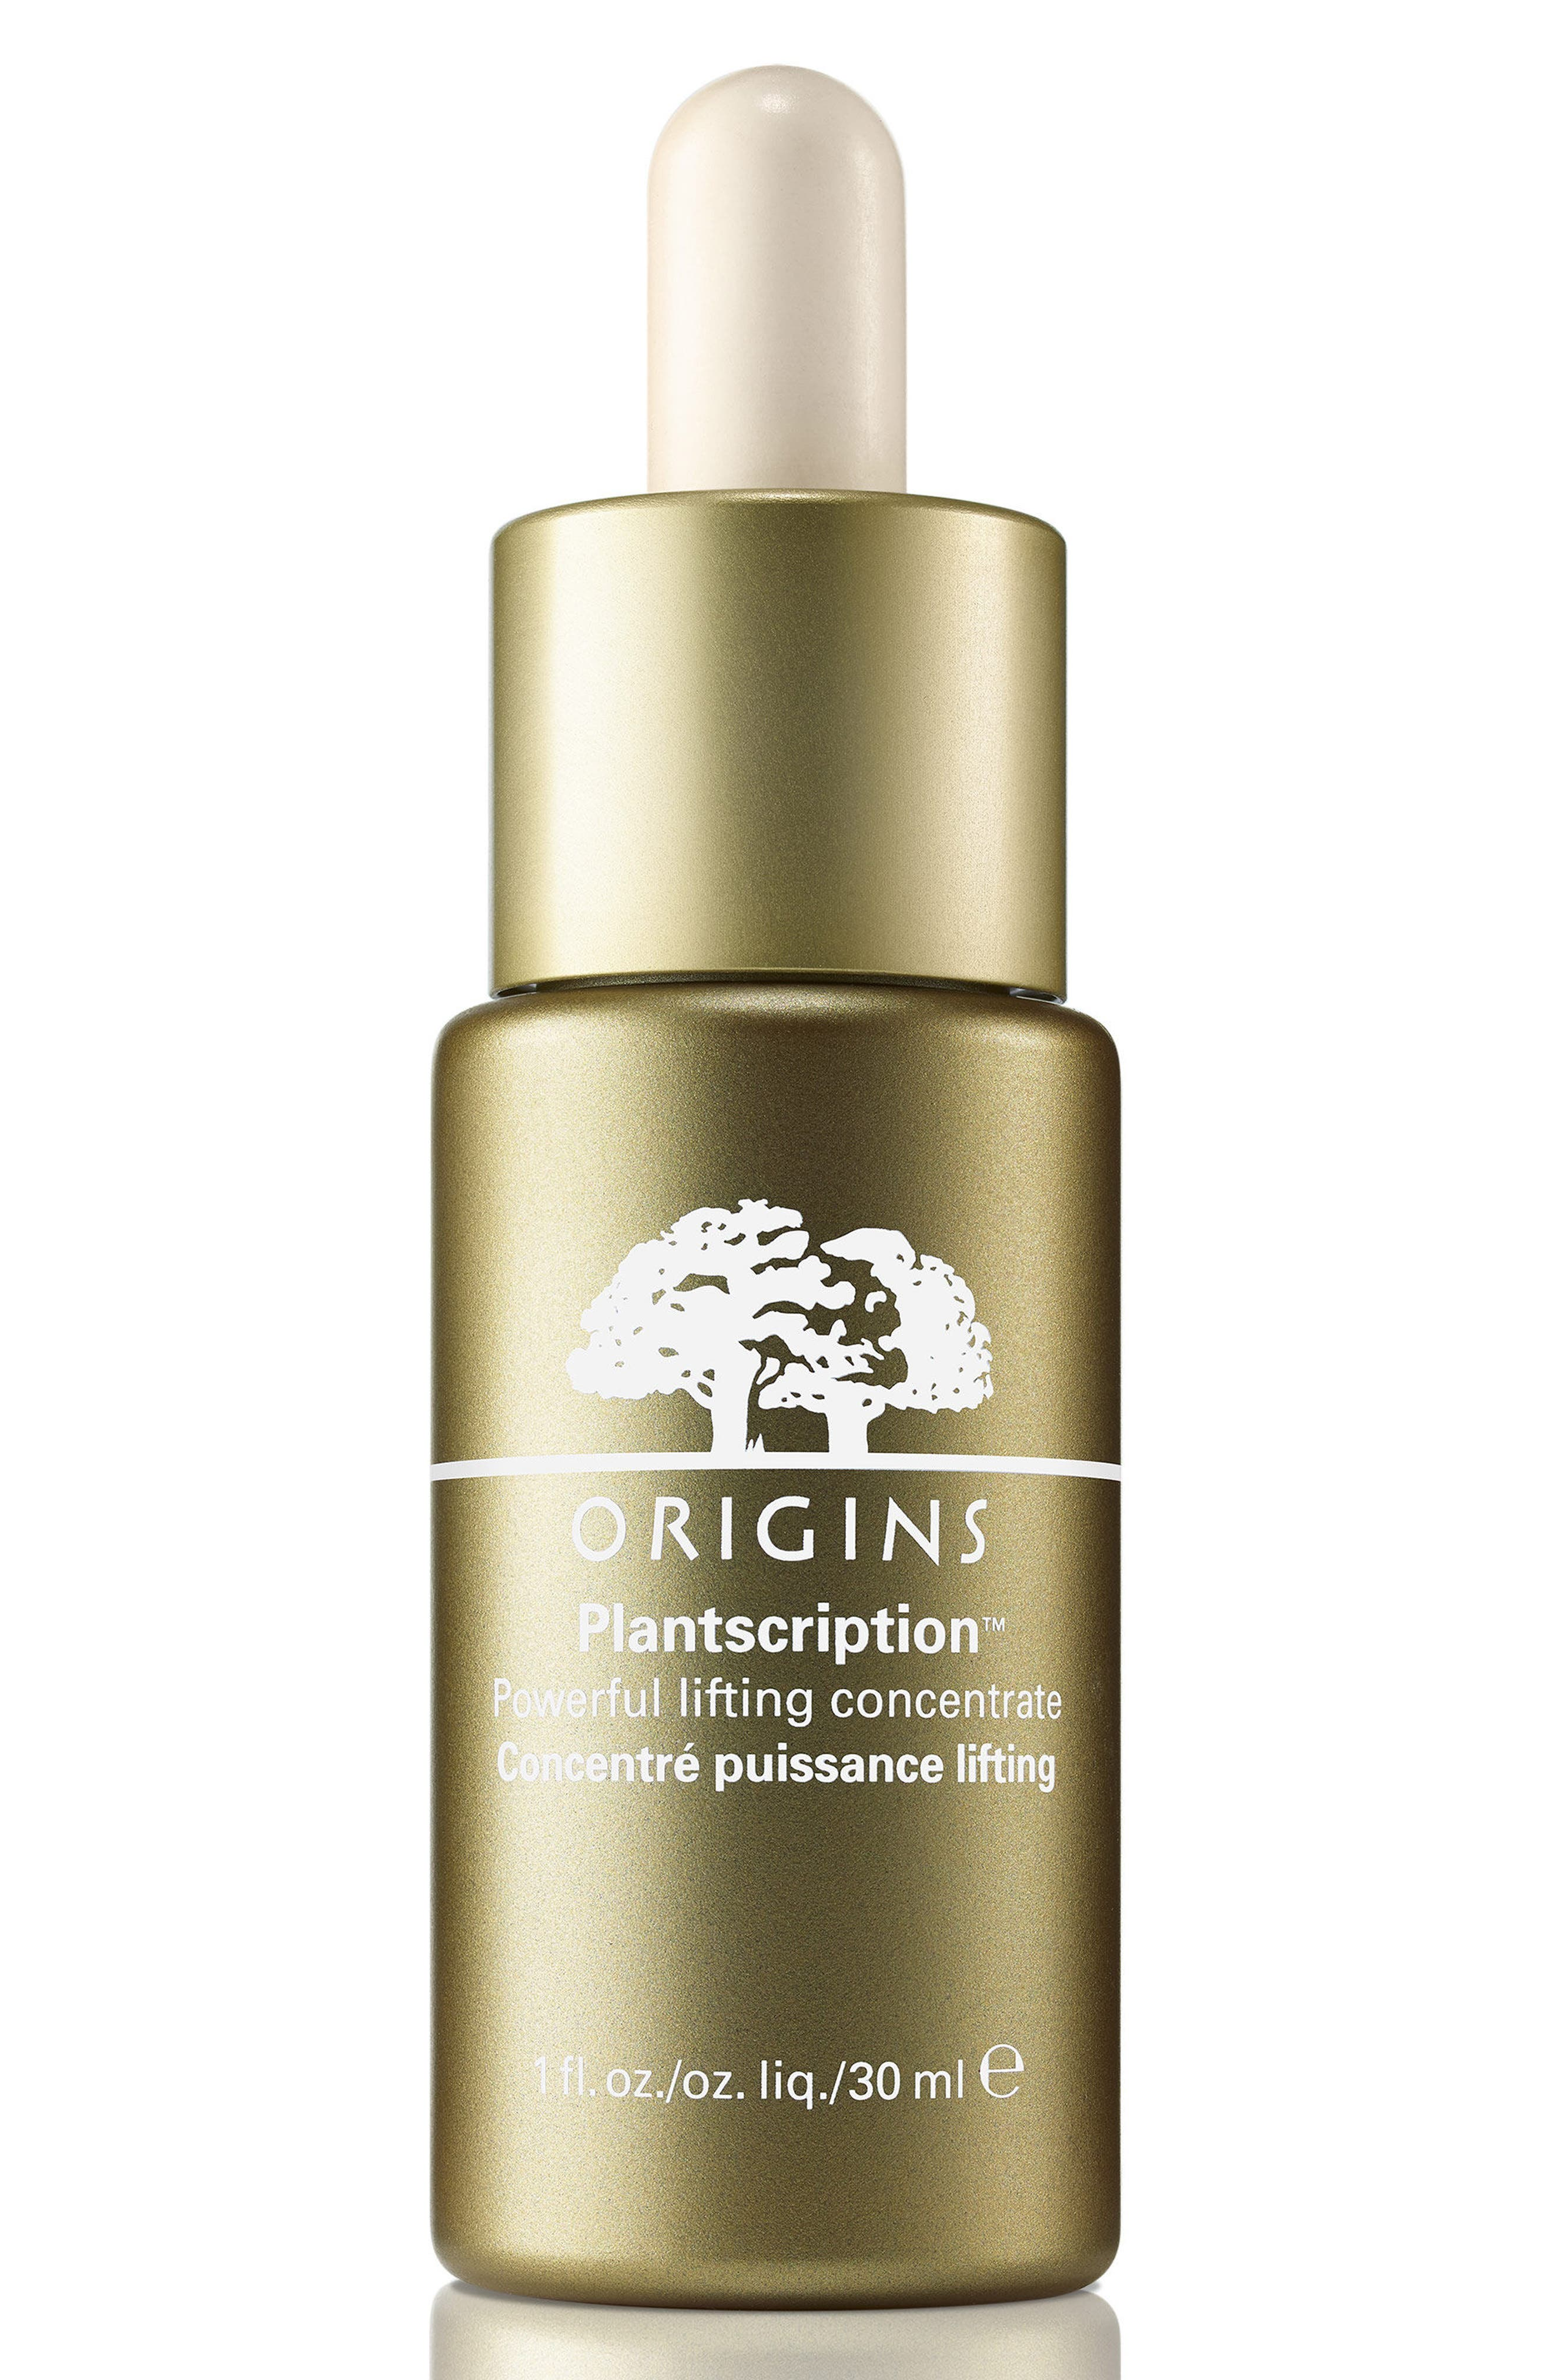 Origins Plantscriptions™ Powerful Lifting Concentrate